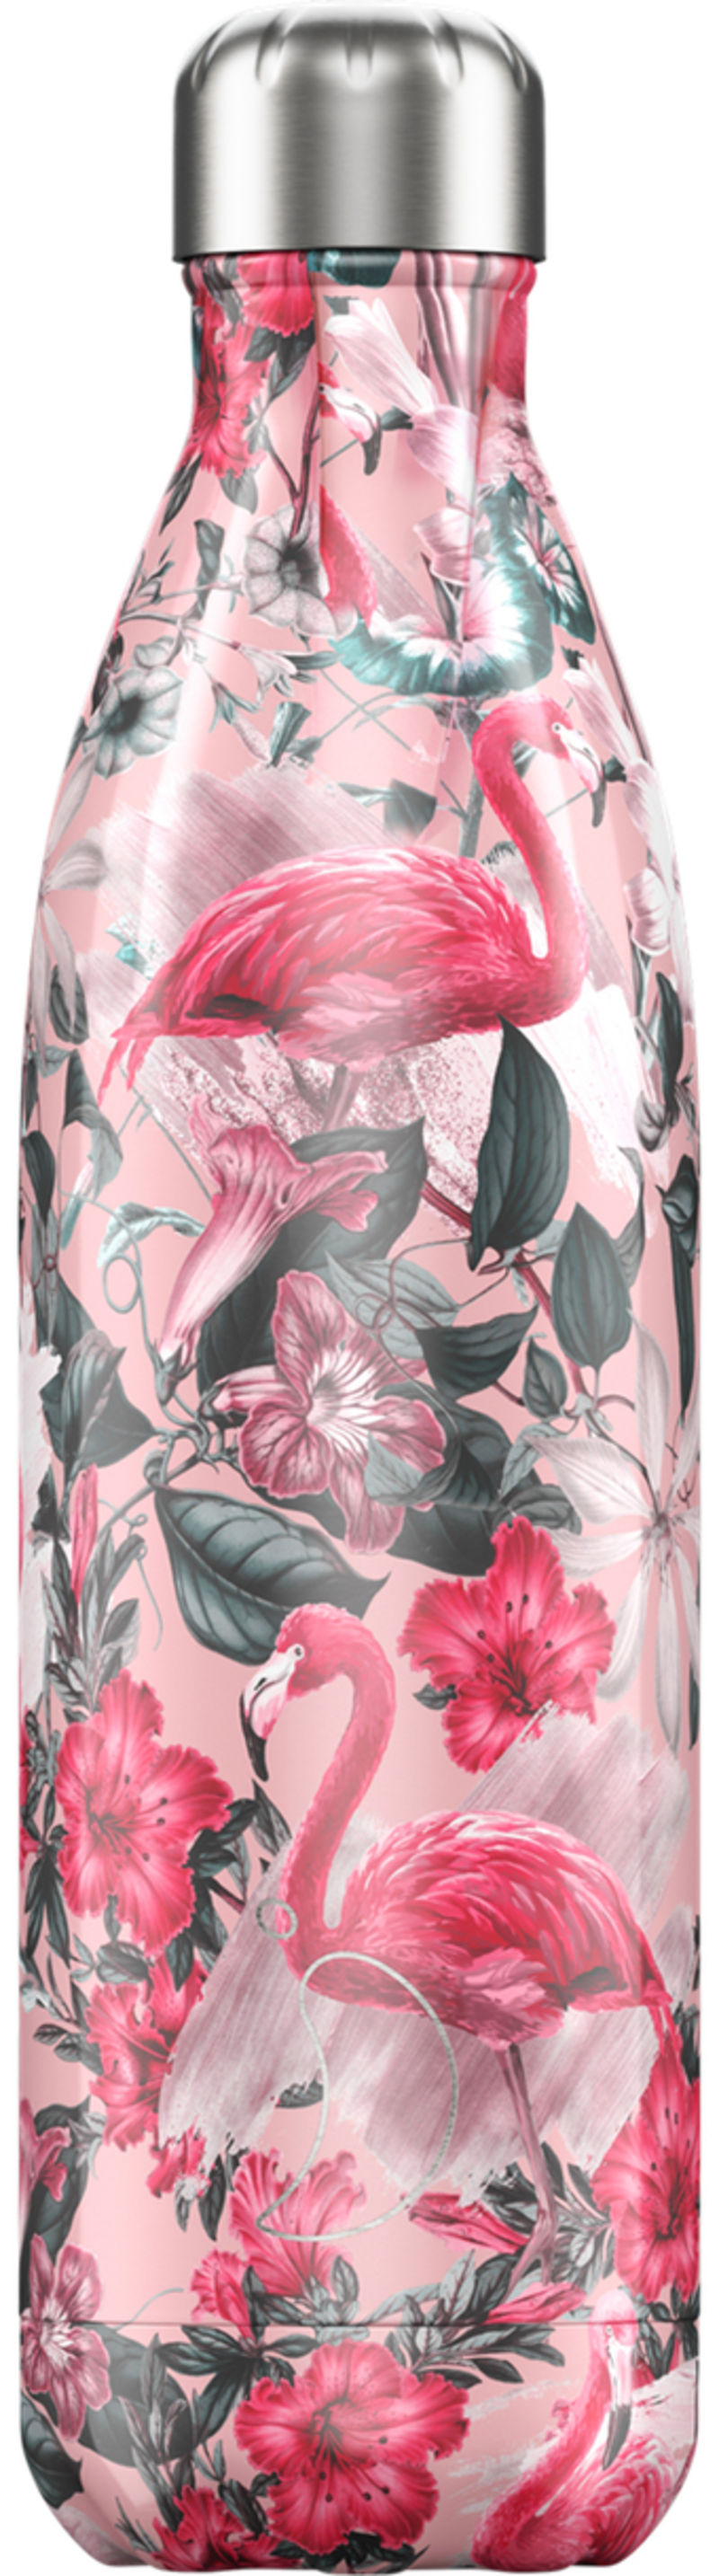 Botella Inox Tropical Flamingo 750ml -